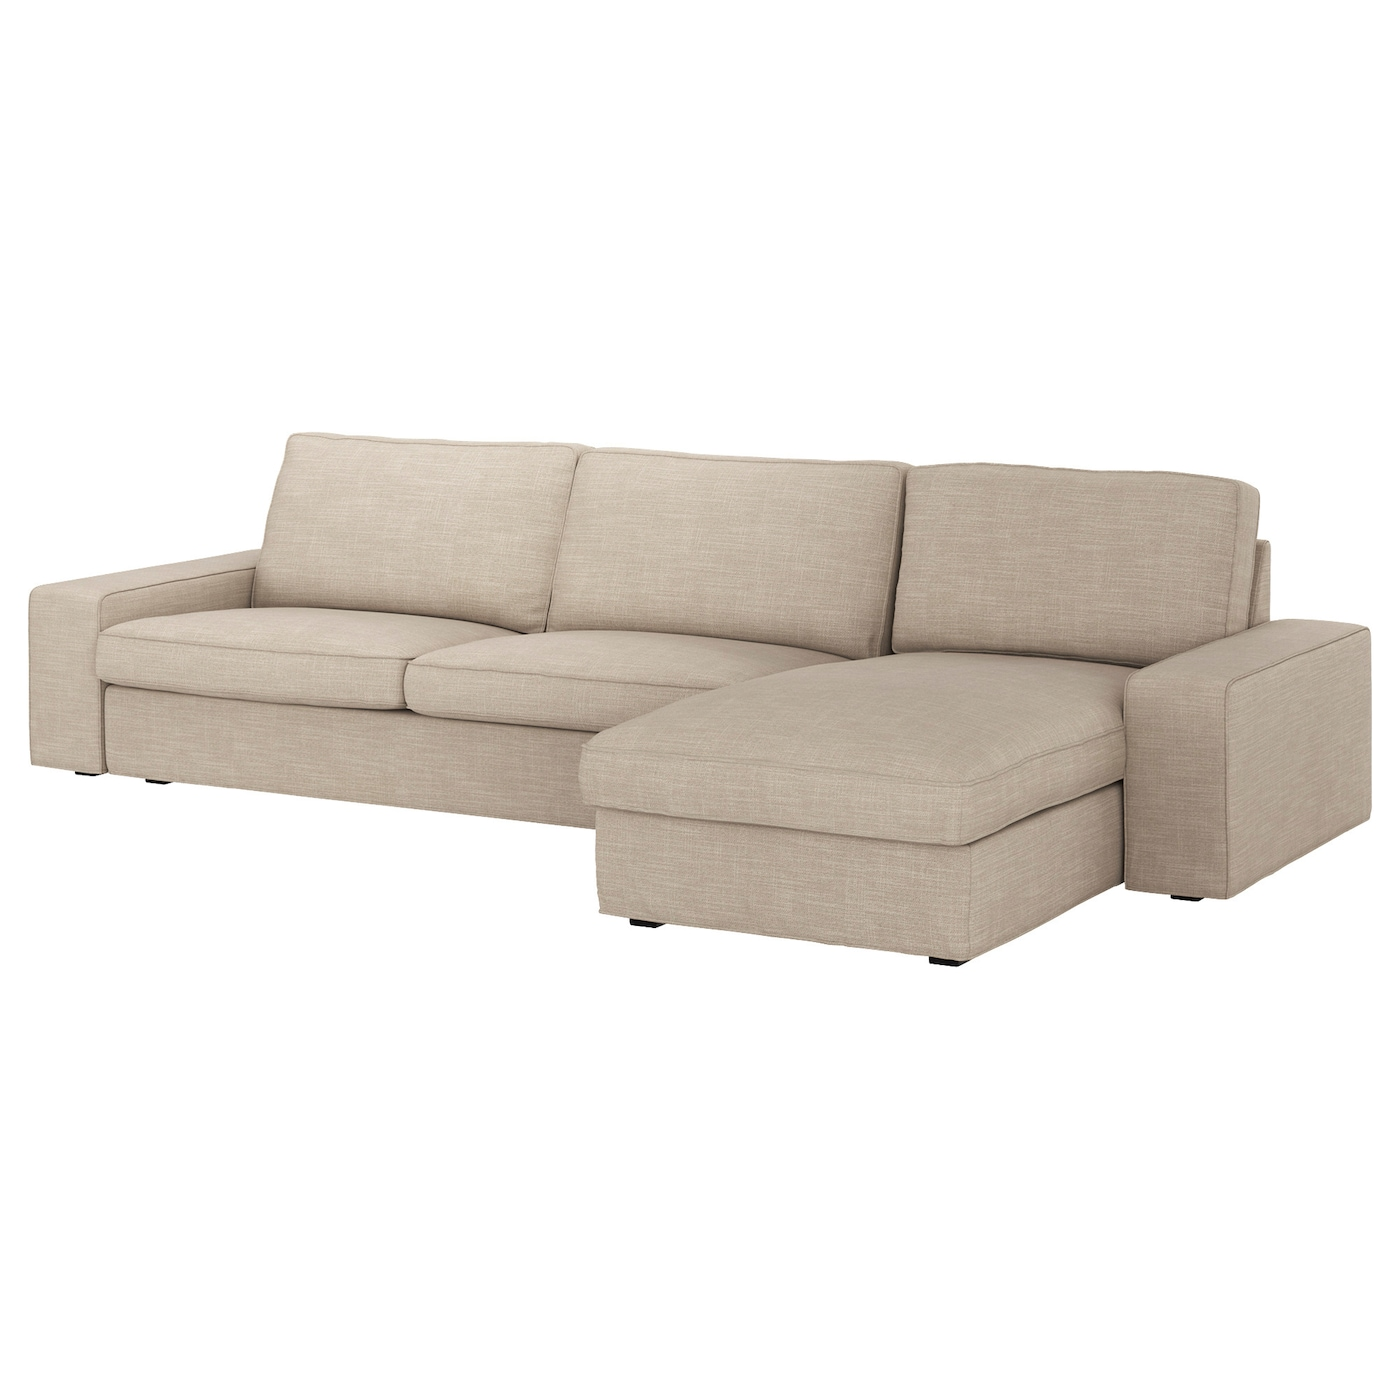 Kivik three seat sofa and chaise longue hillared beige ikea for Chaise longue bank